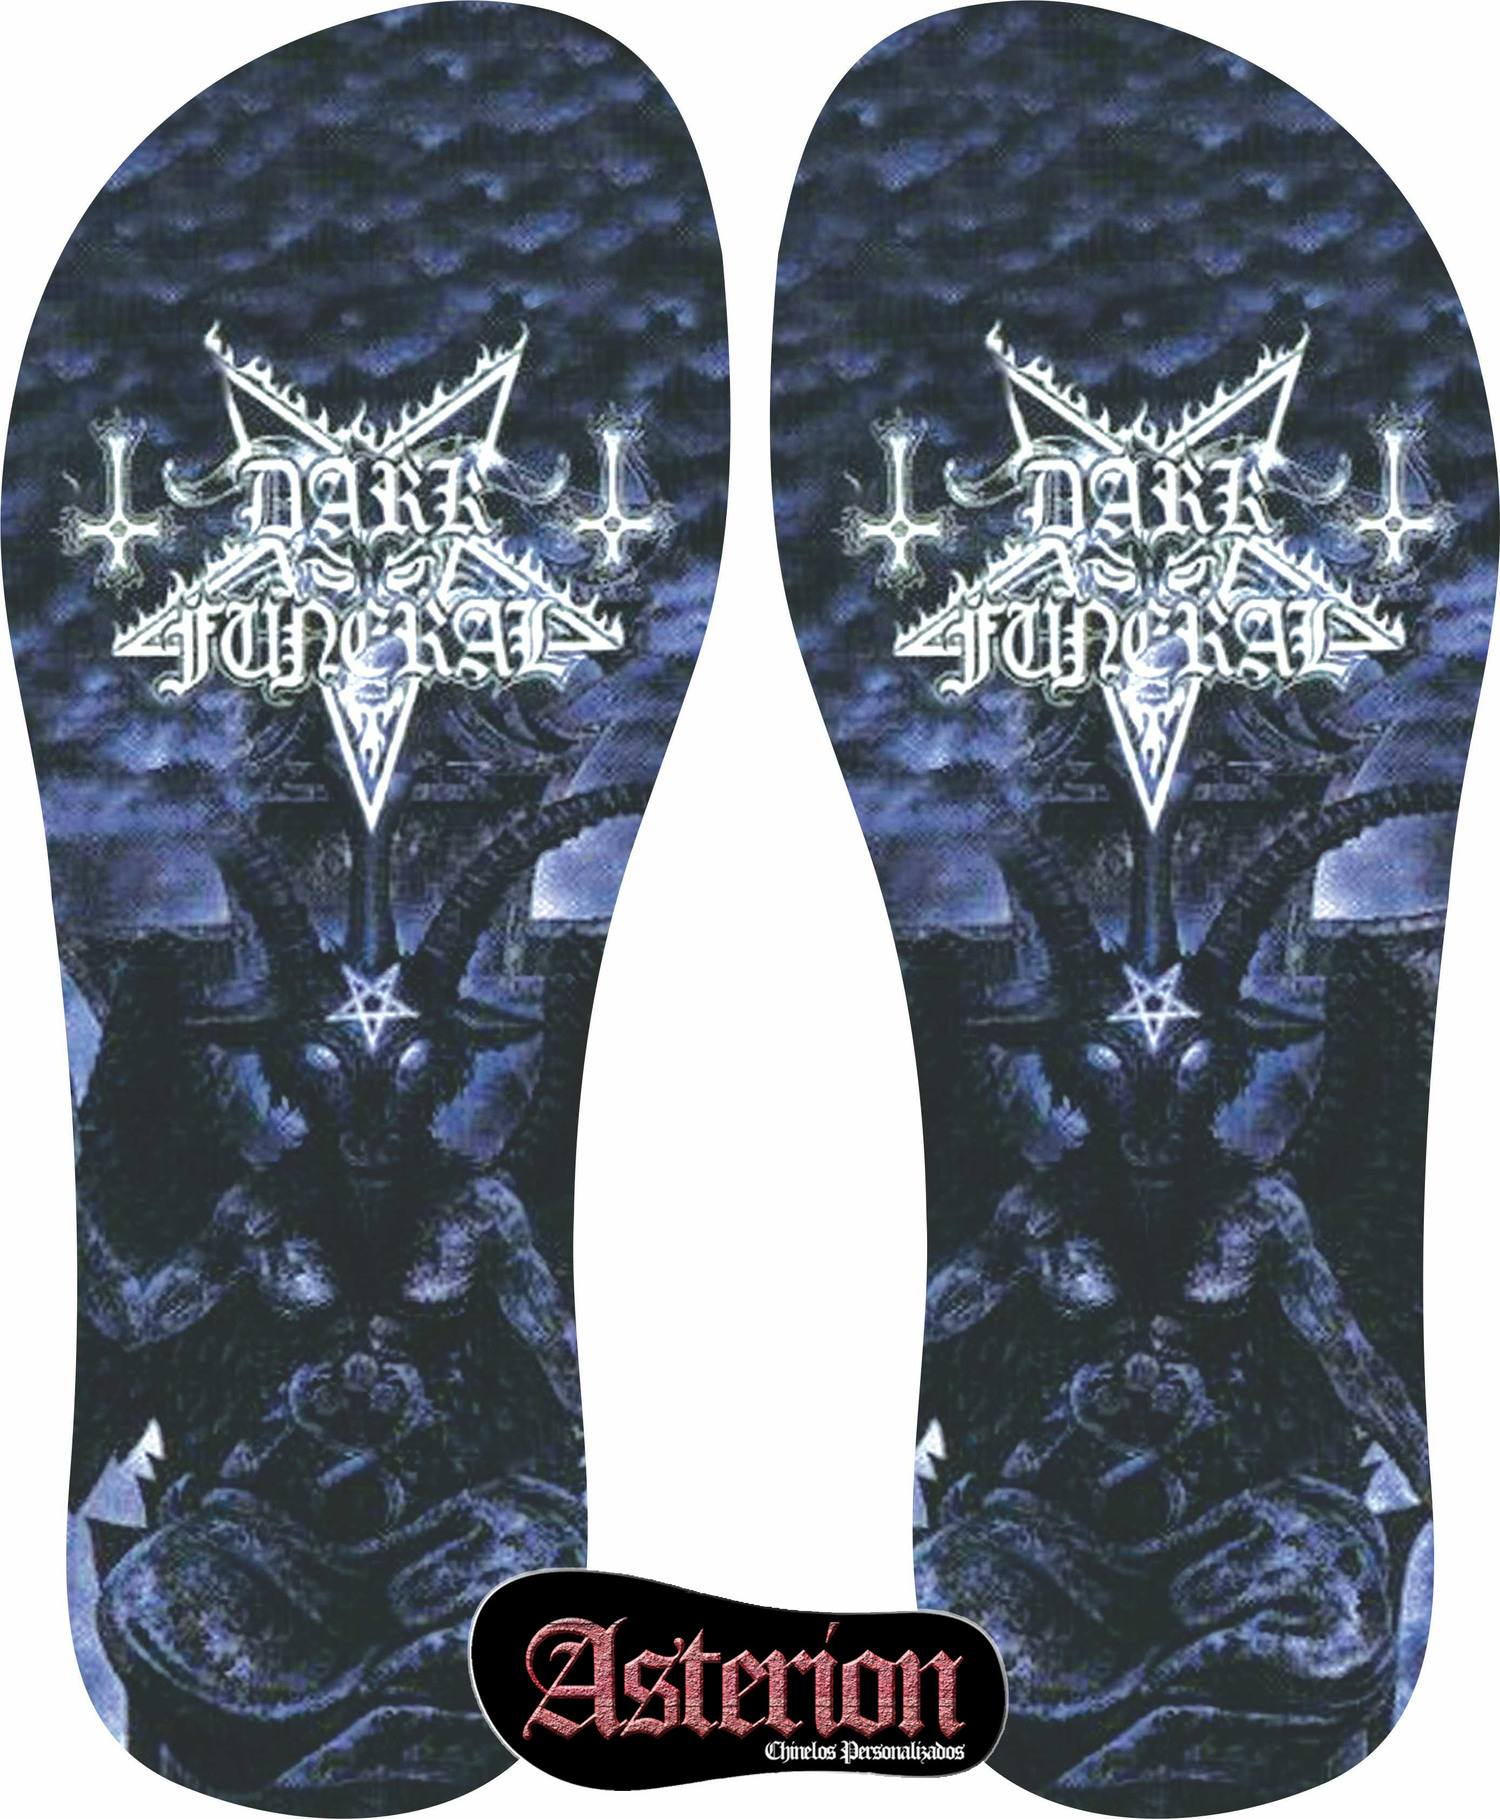 Chinelo Dark Funeral – Asterion Chinelos Personalizados